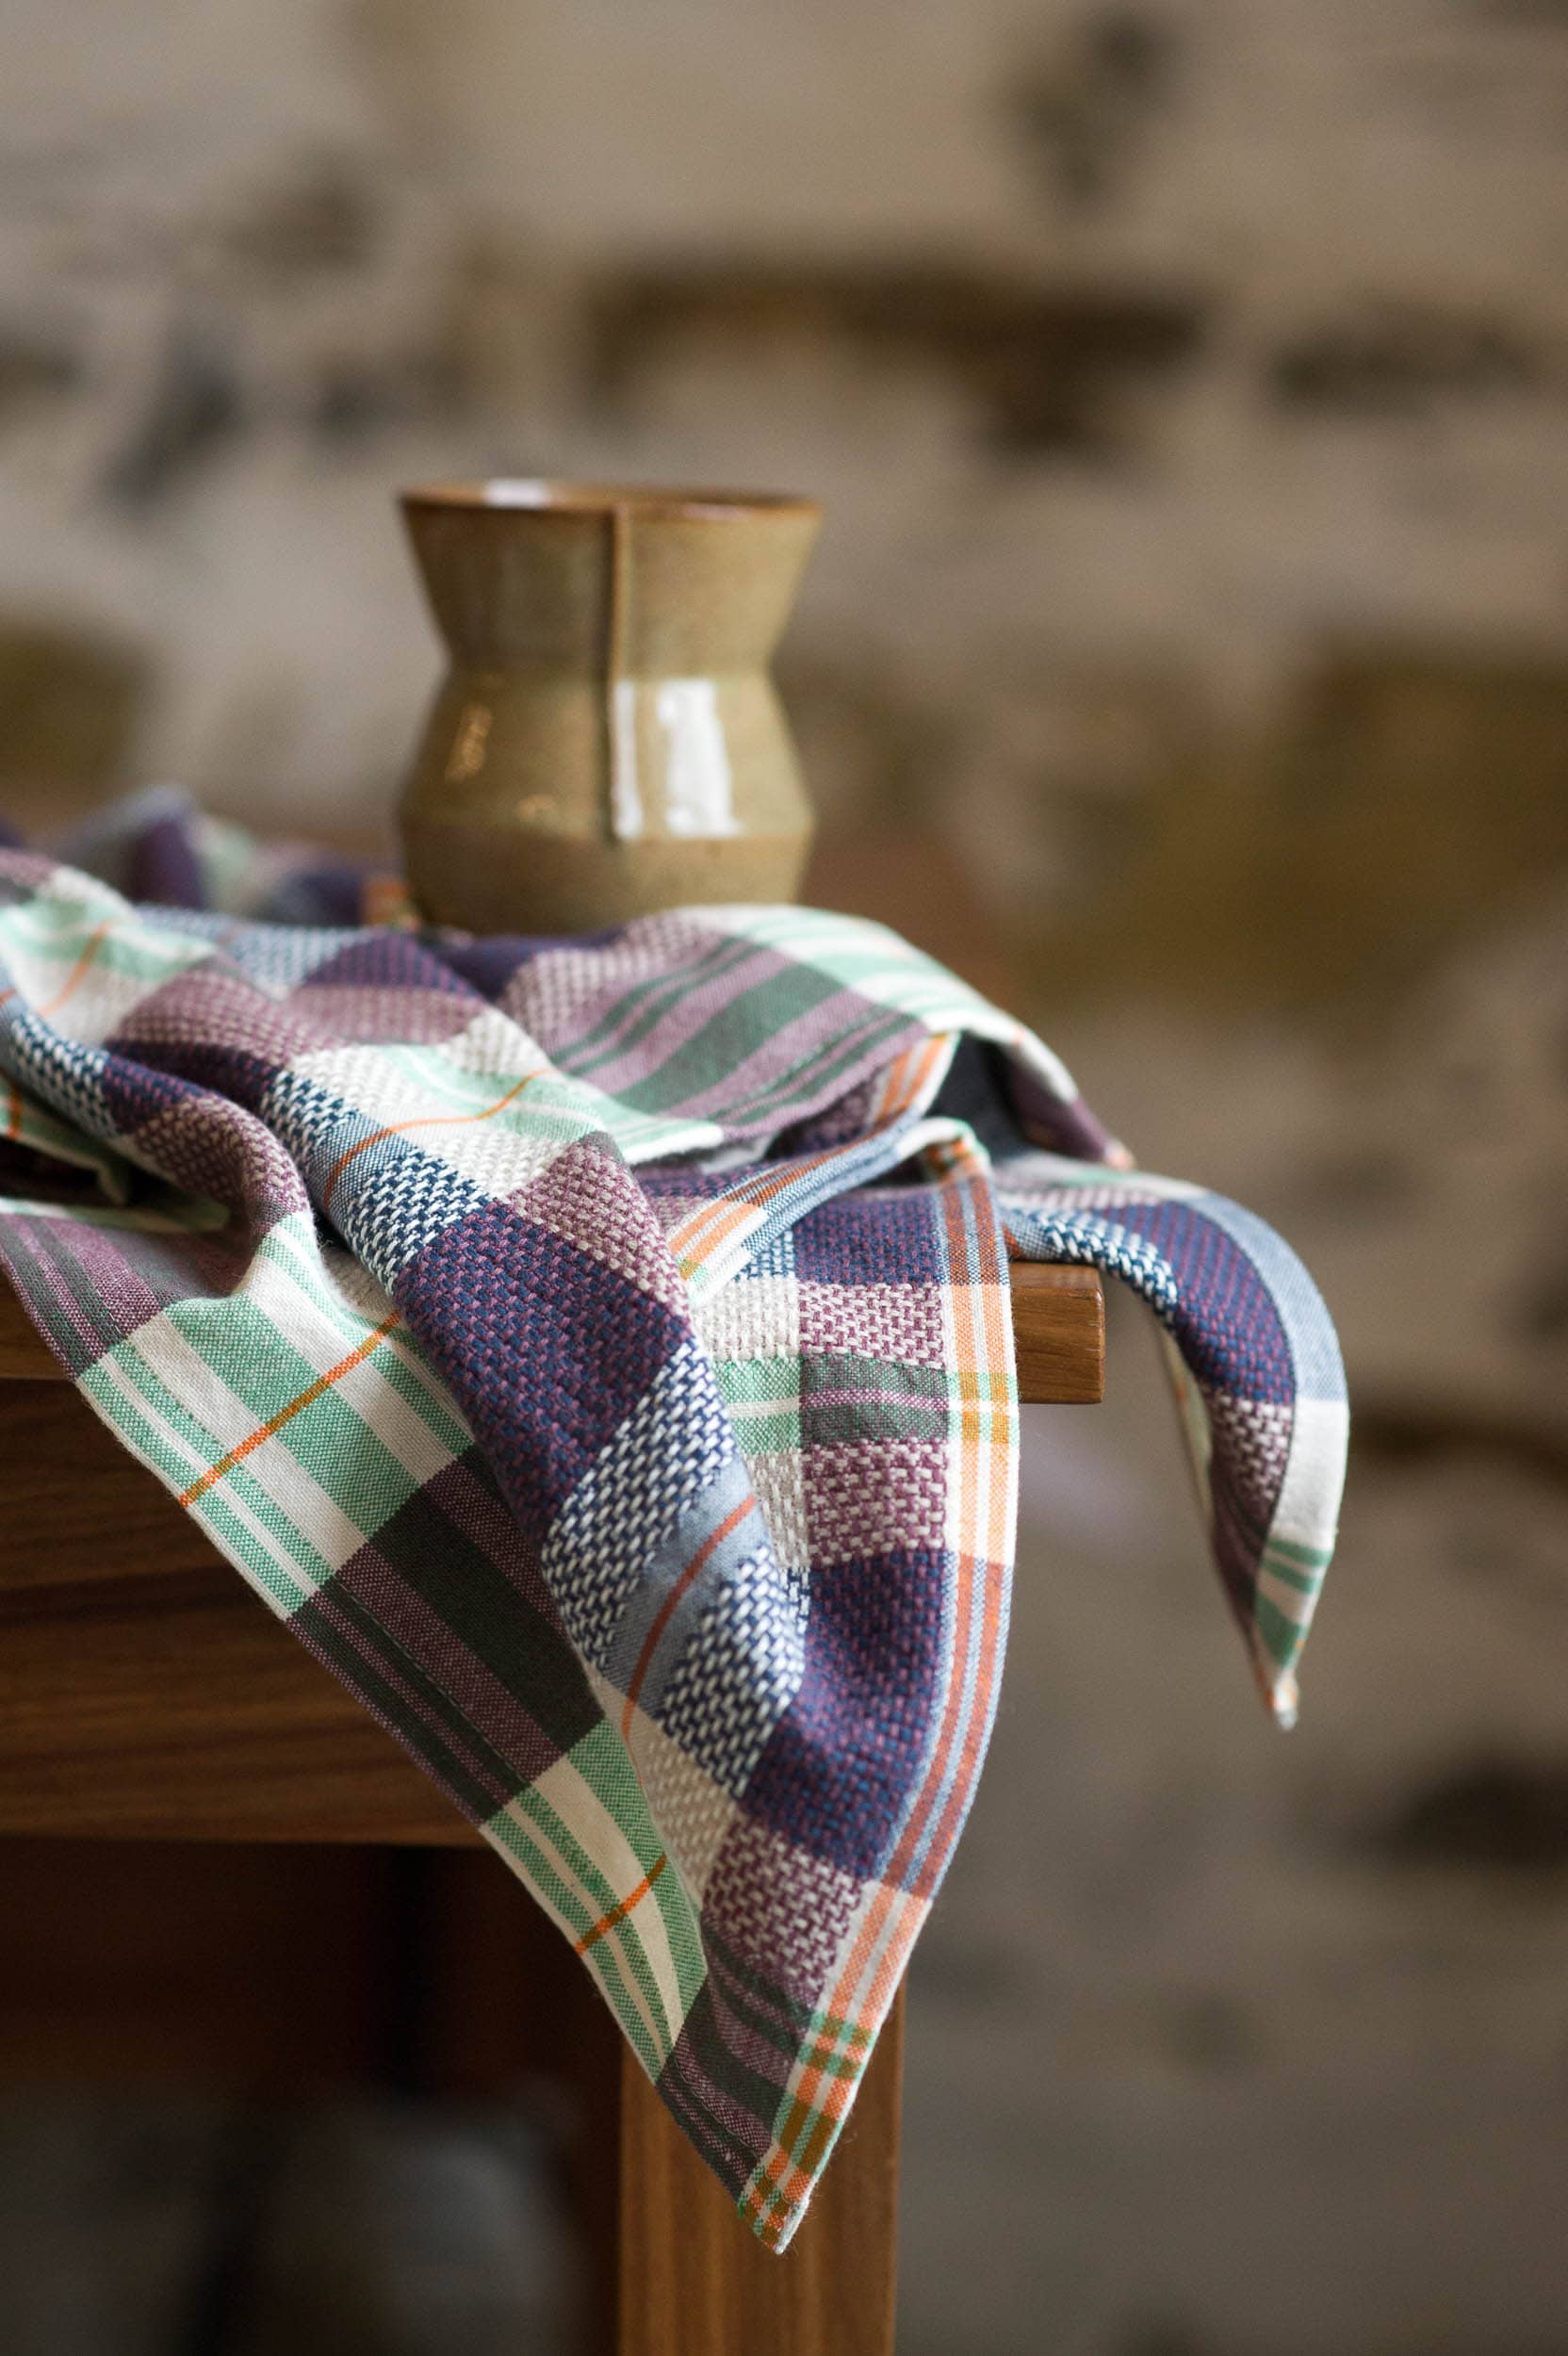 Mungo Vadoek Cloth in Mulberry, a colourful addition to out kitchen linen range woven from natural fibres at our mill in Plettenberg Bay, South Africa